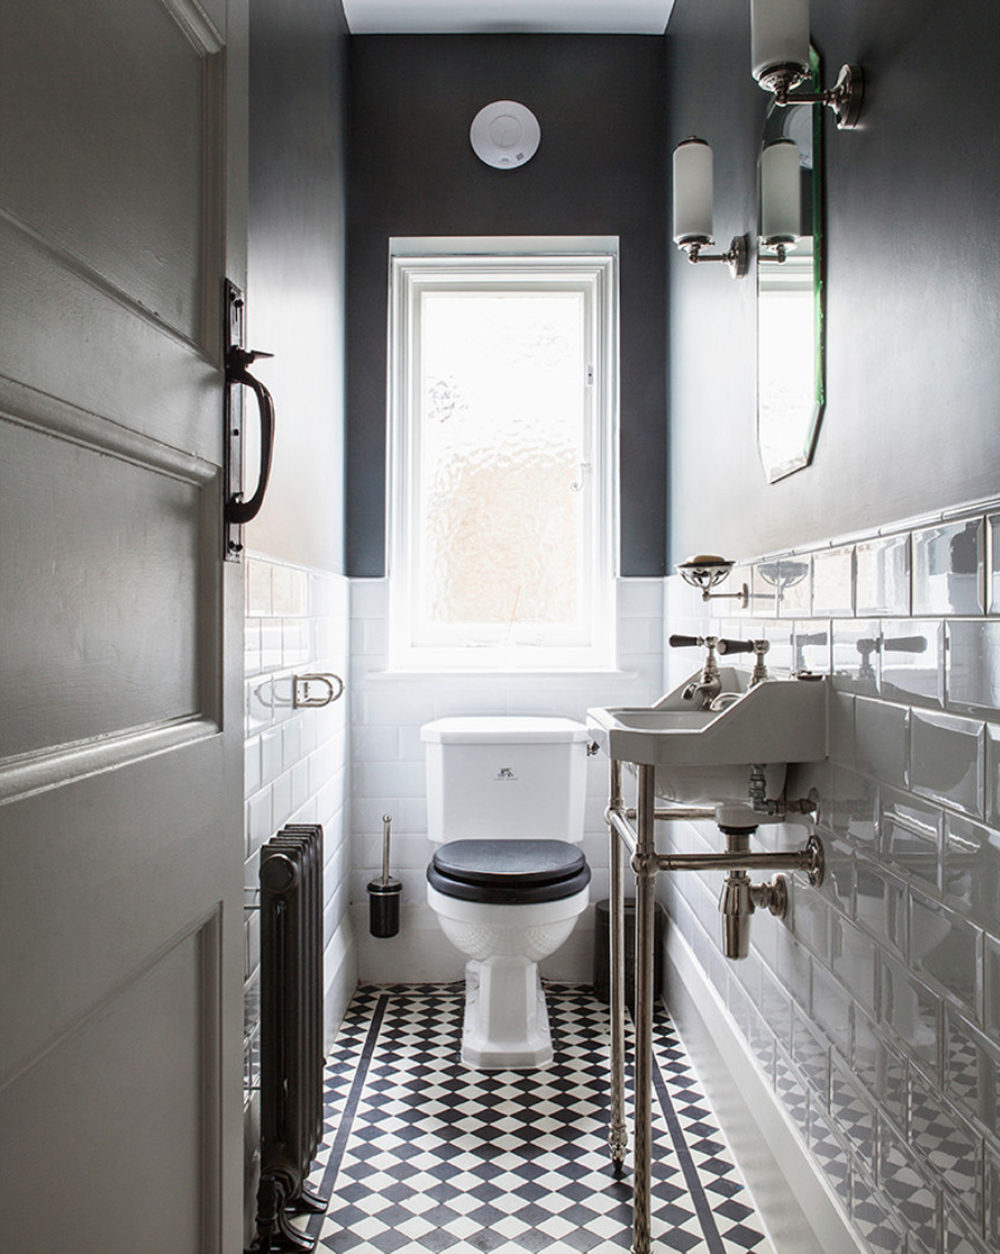 Traditional cloakroom with white metro wall tiles and chequered floor tiles - Minton Young || 15 small cloakrooms / powder rooms that are big on style - FIRST SENSE